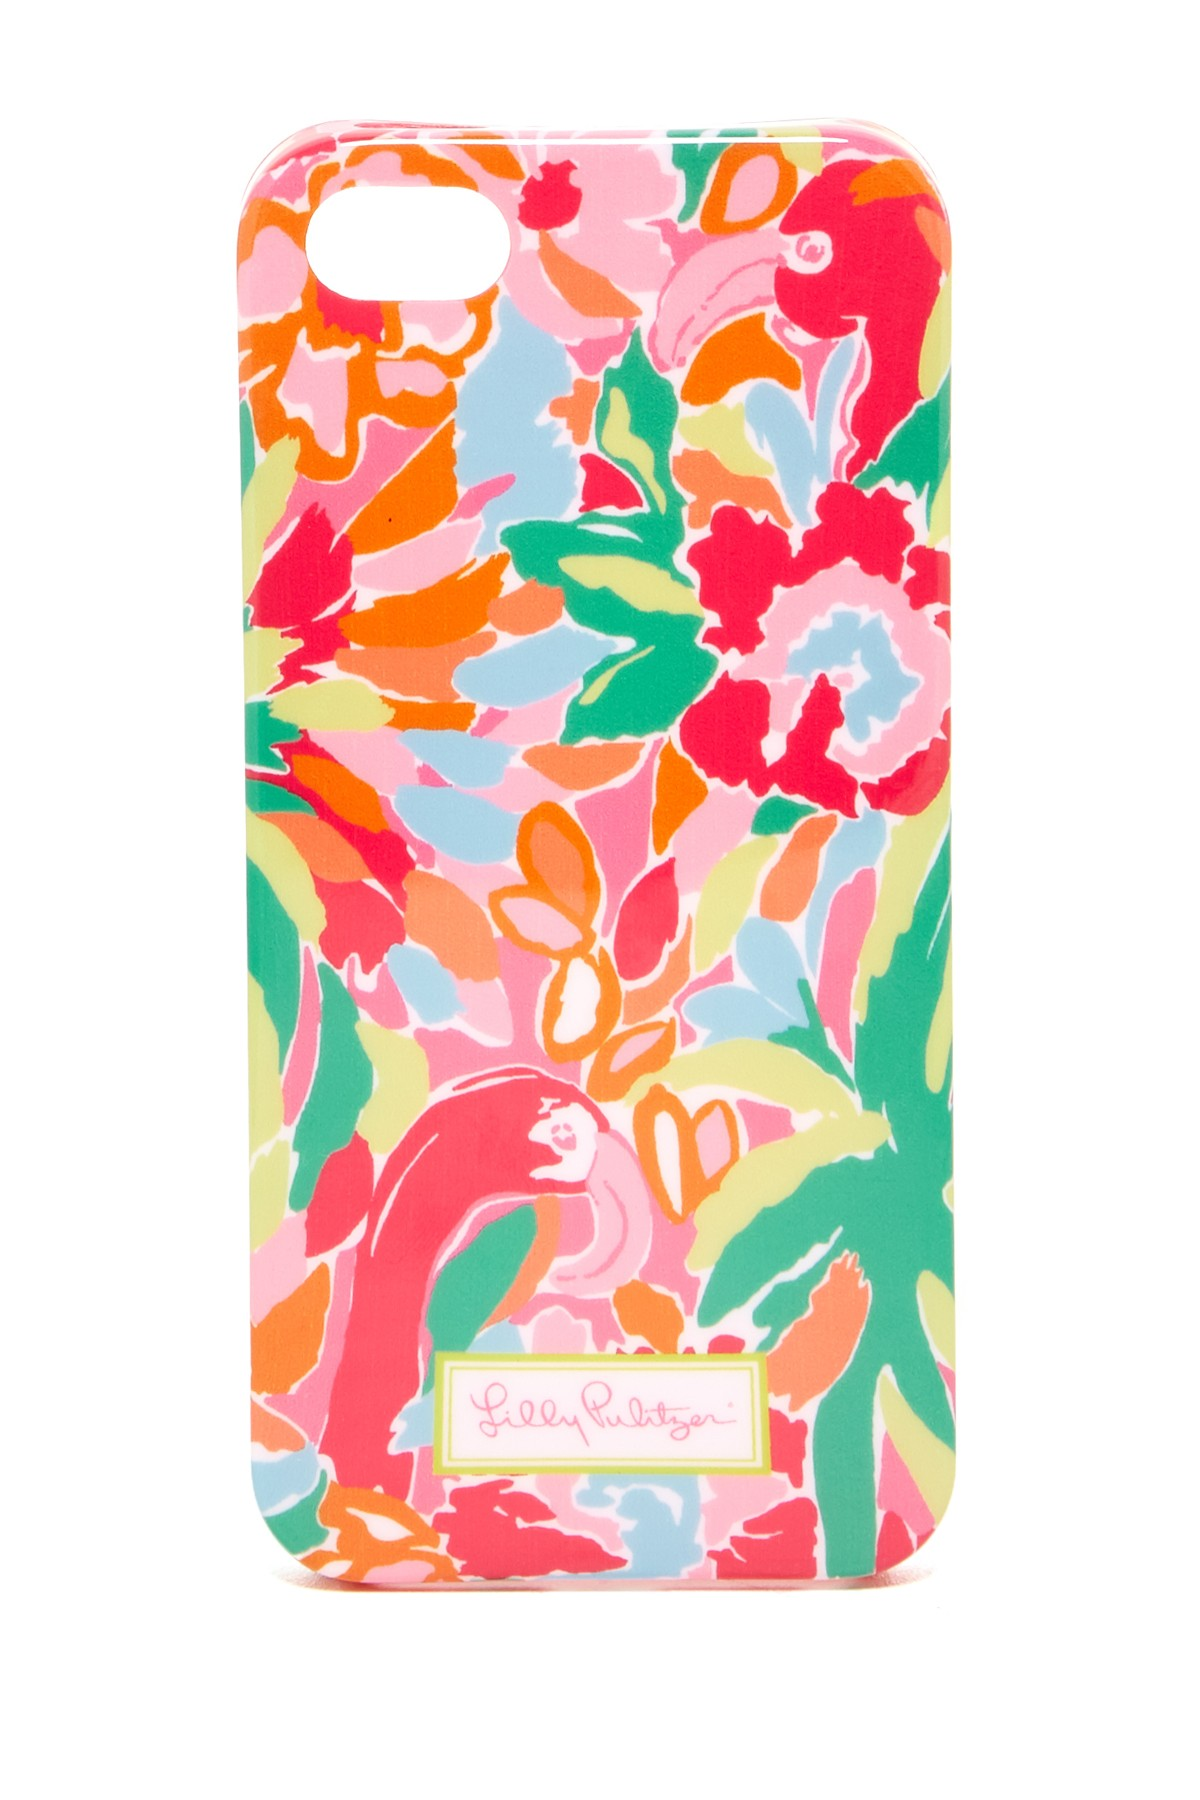 Enchanting Lilly Pulitzer Phone Case for Phone Accessories Ideas: Lilly Pulitzer Phone Case | Lilly Pulitzer Iphone 4s Cases | Lilly Iphone 5 Case